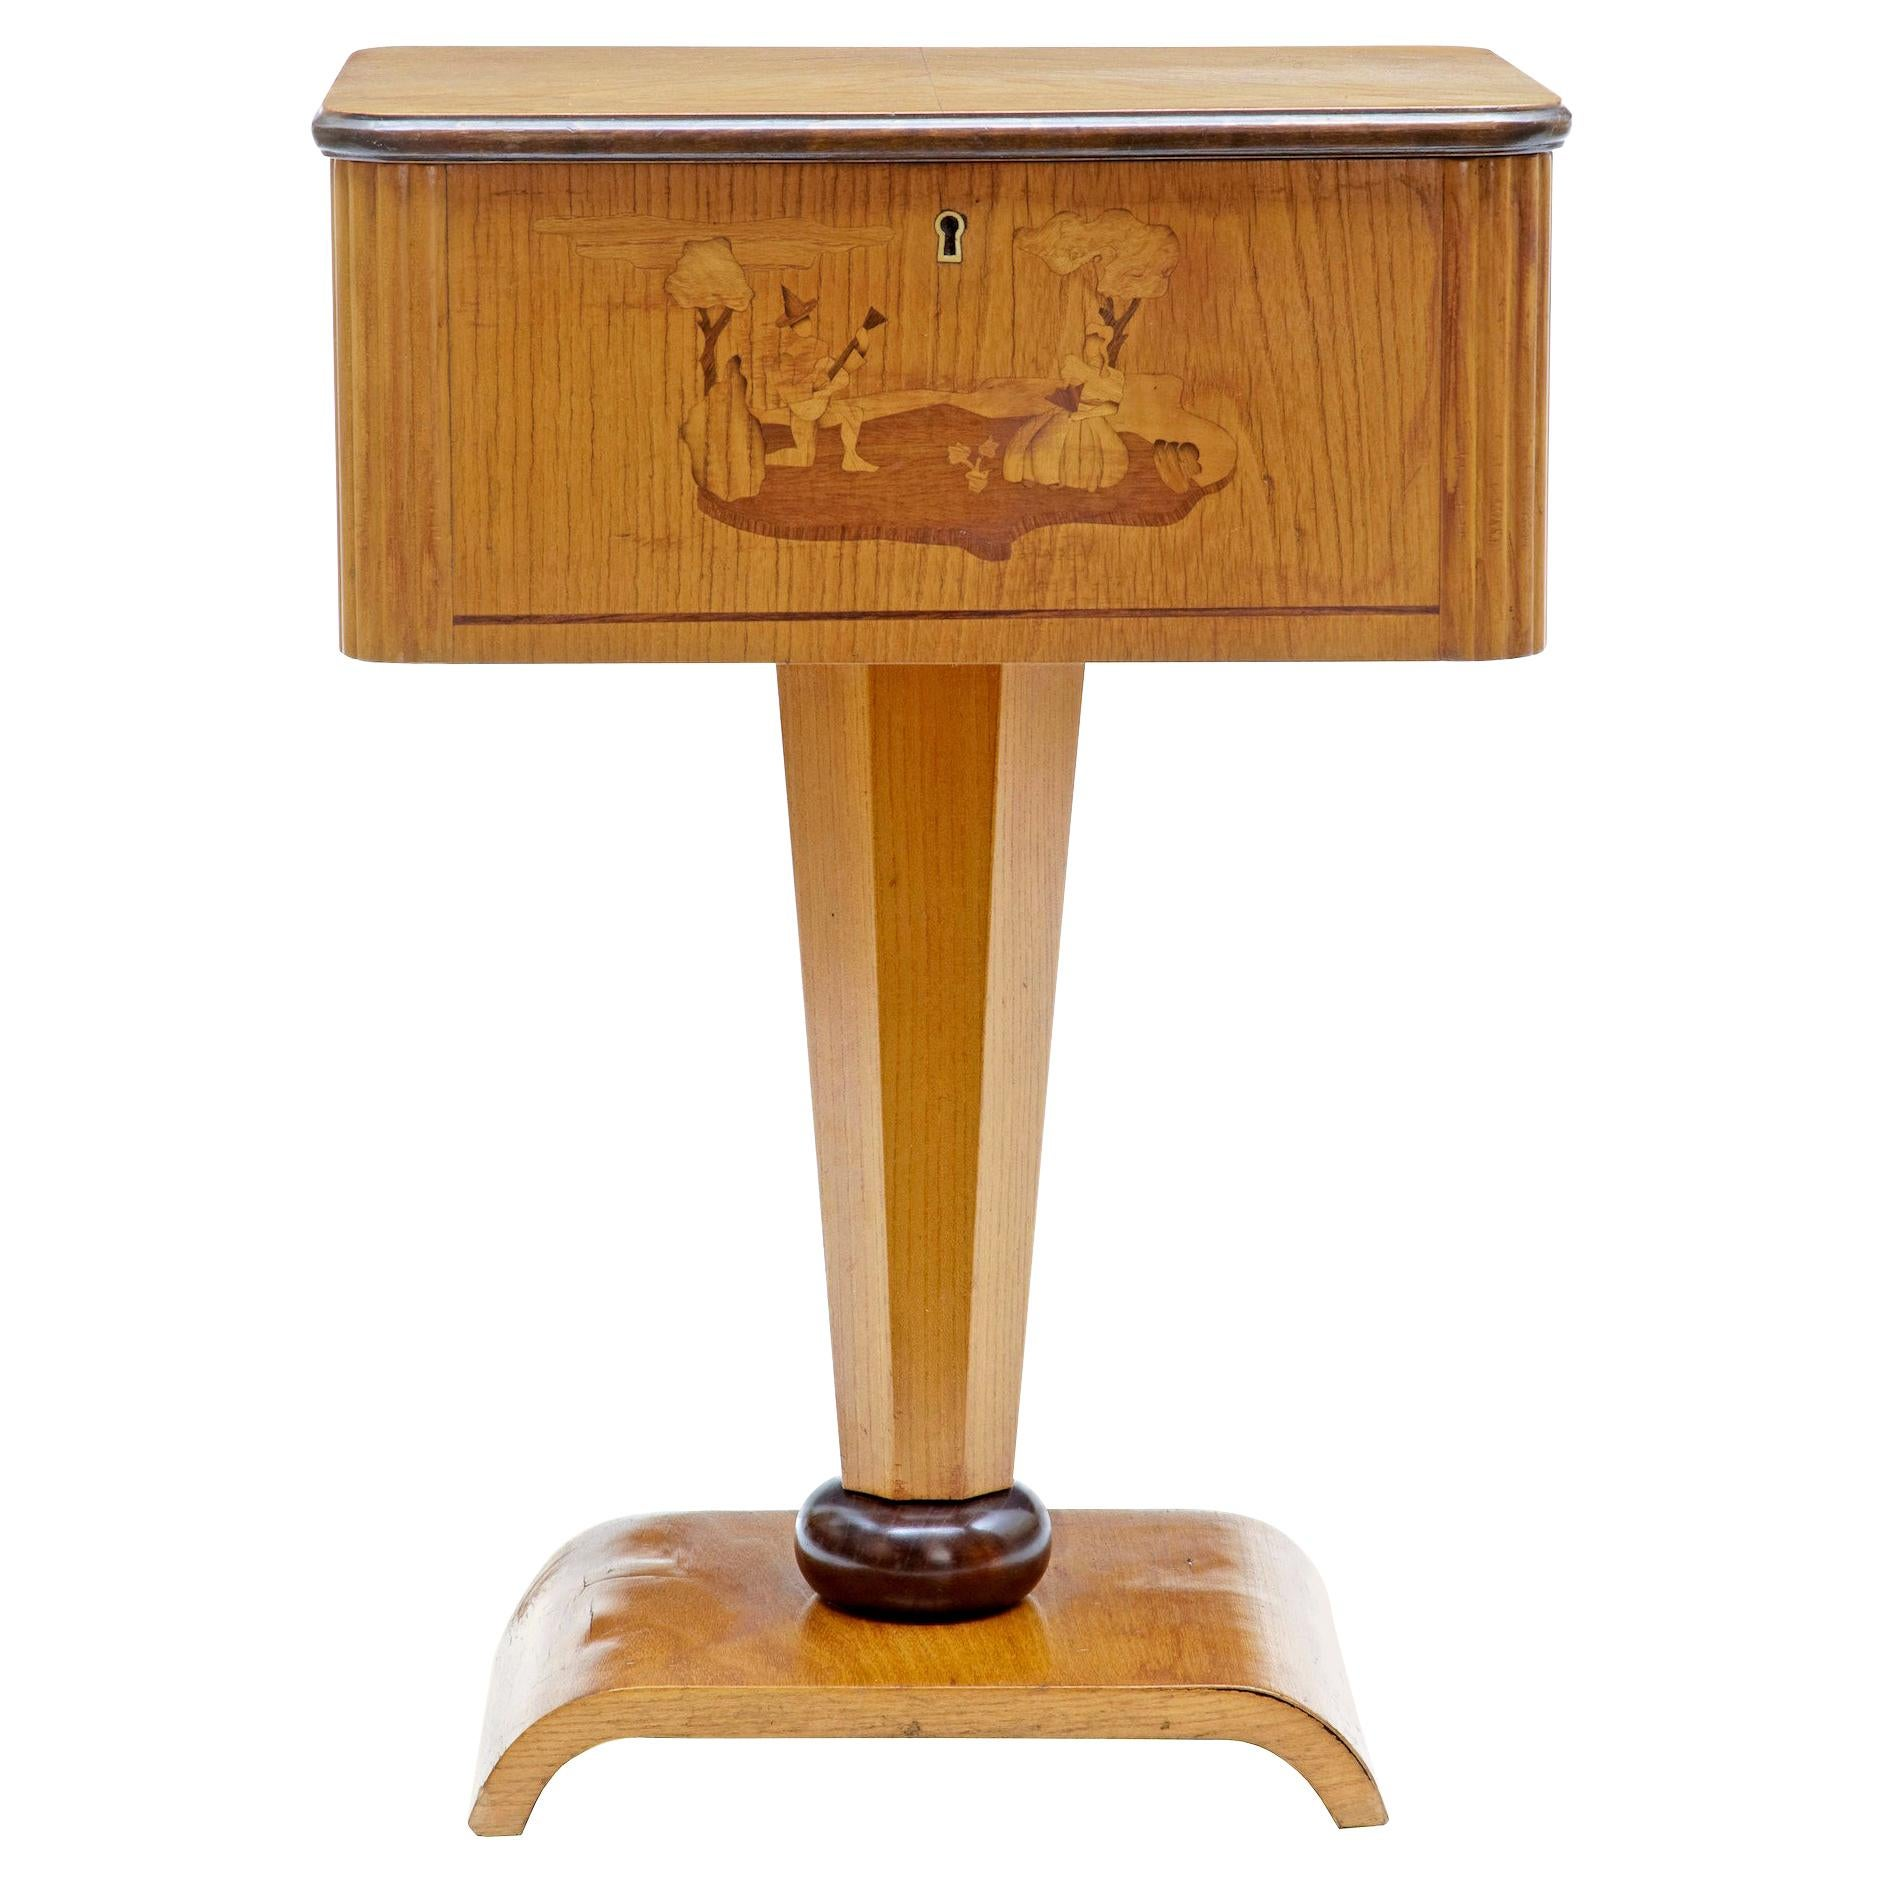 1920's Art Deco Birch Inlaid Small Work Table